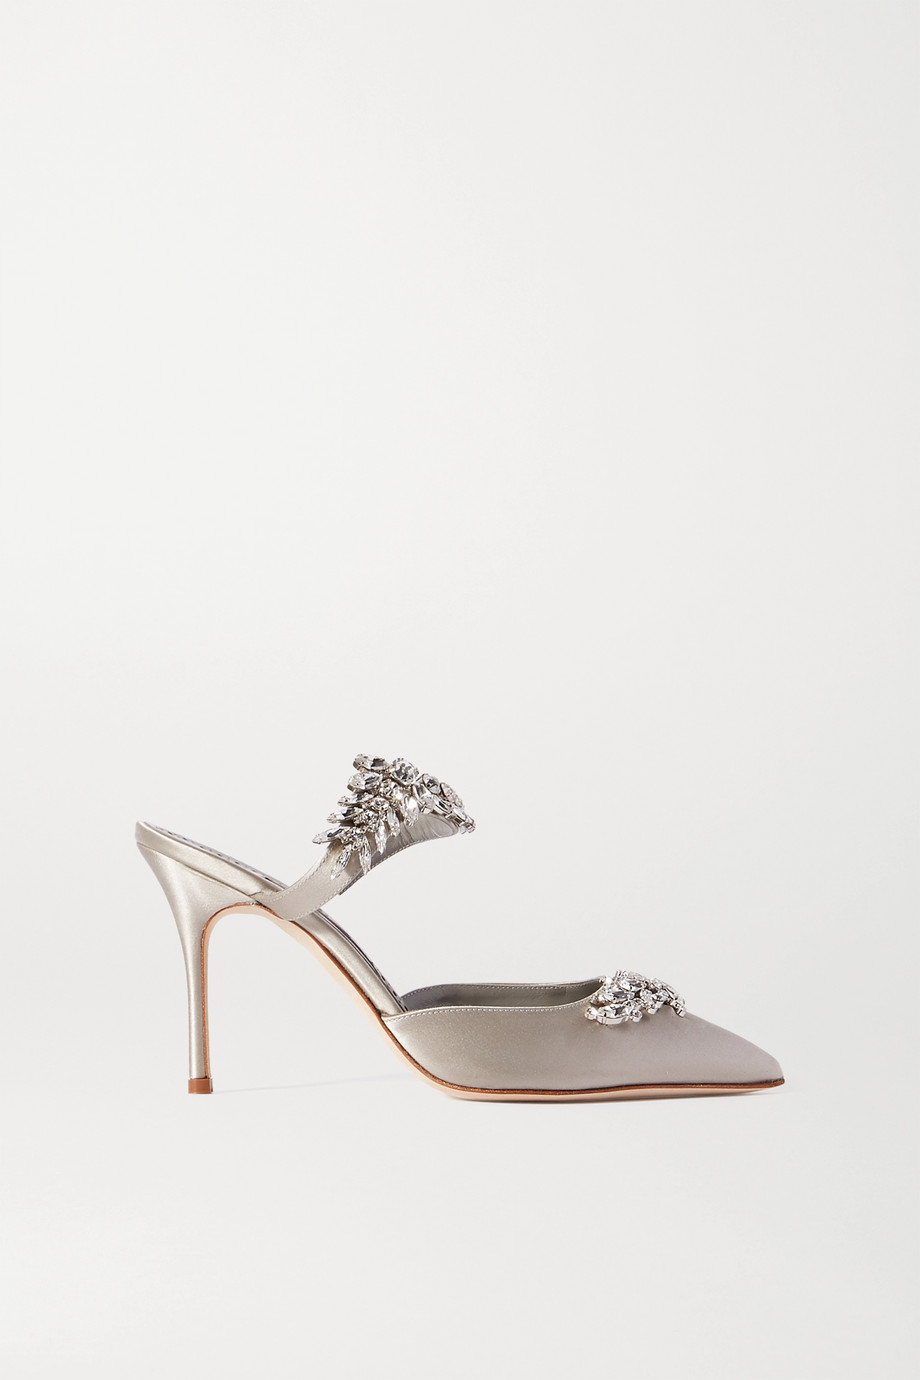 MANOLO BLAHNIK Lurum crystal-embellished satin mules